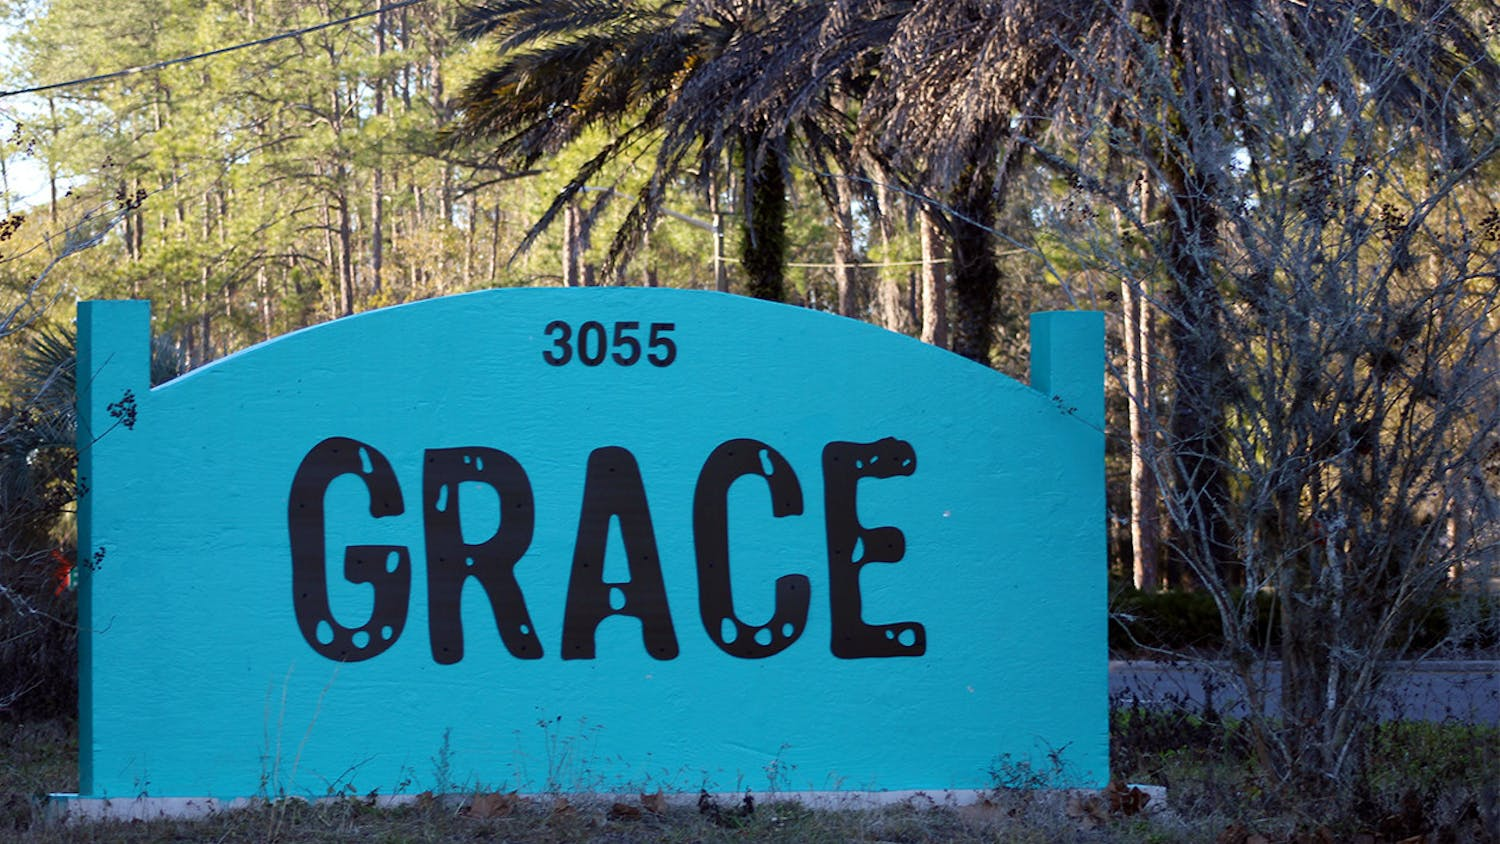 Photo of GRACE Marketplace sign at 3055 NE 28th Ave. in Gainesville, FL.